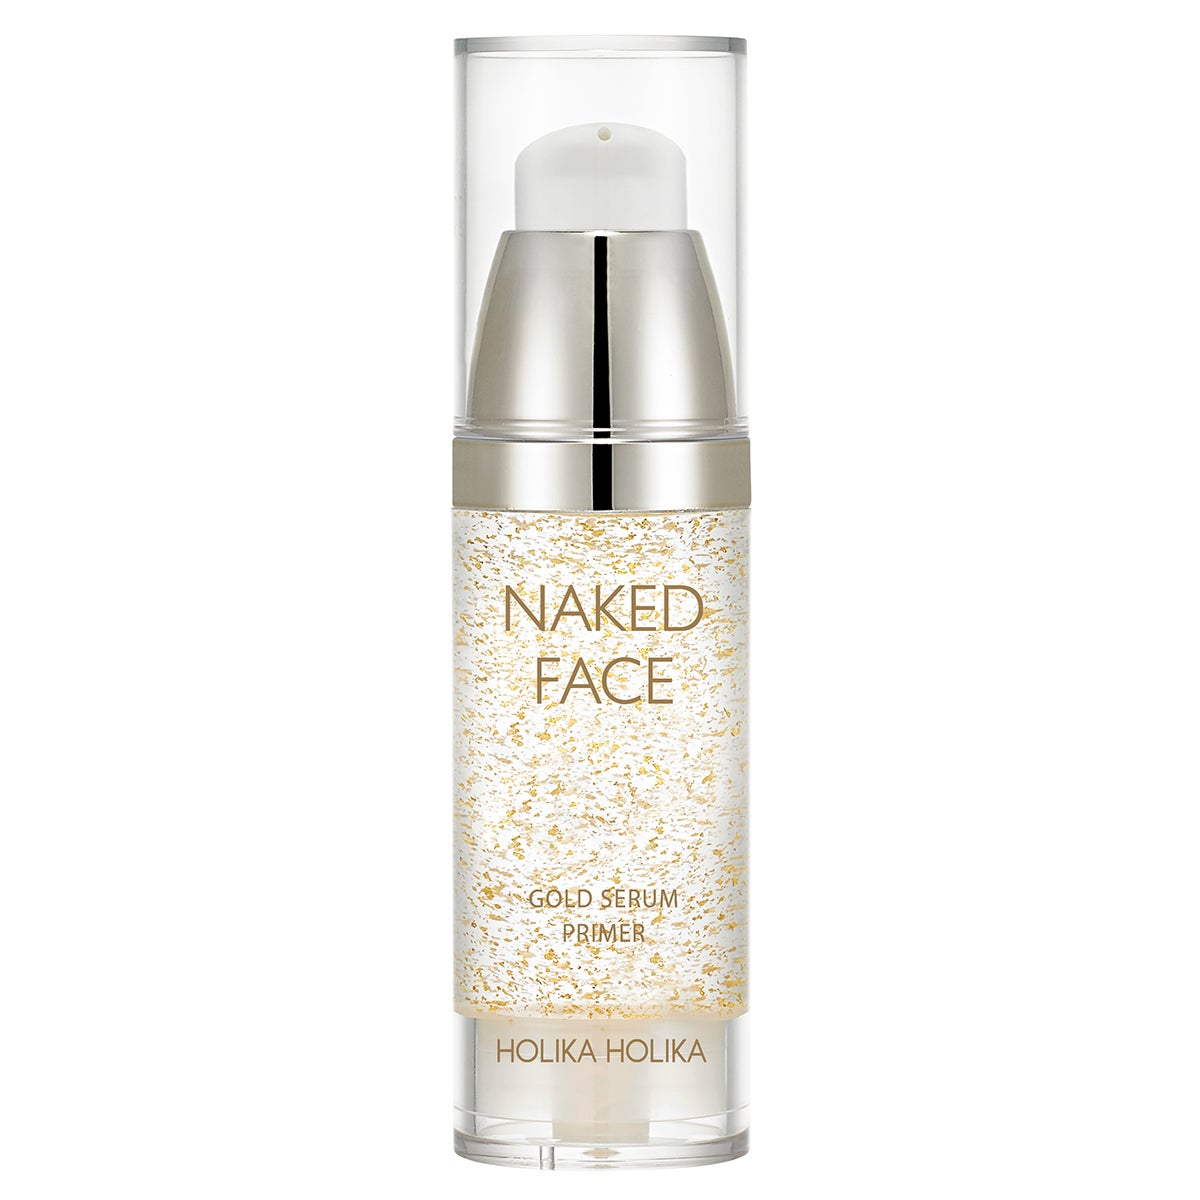 Holika Holika Naked Face Gold Serum Primer